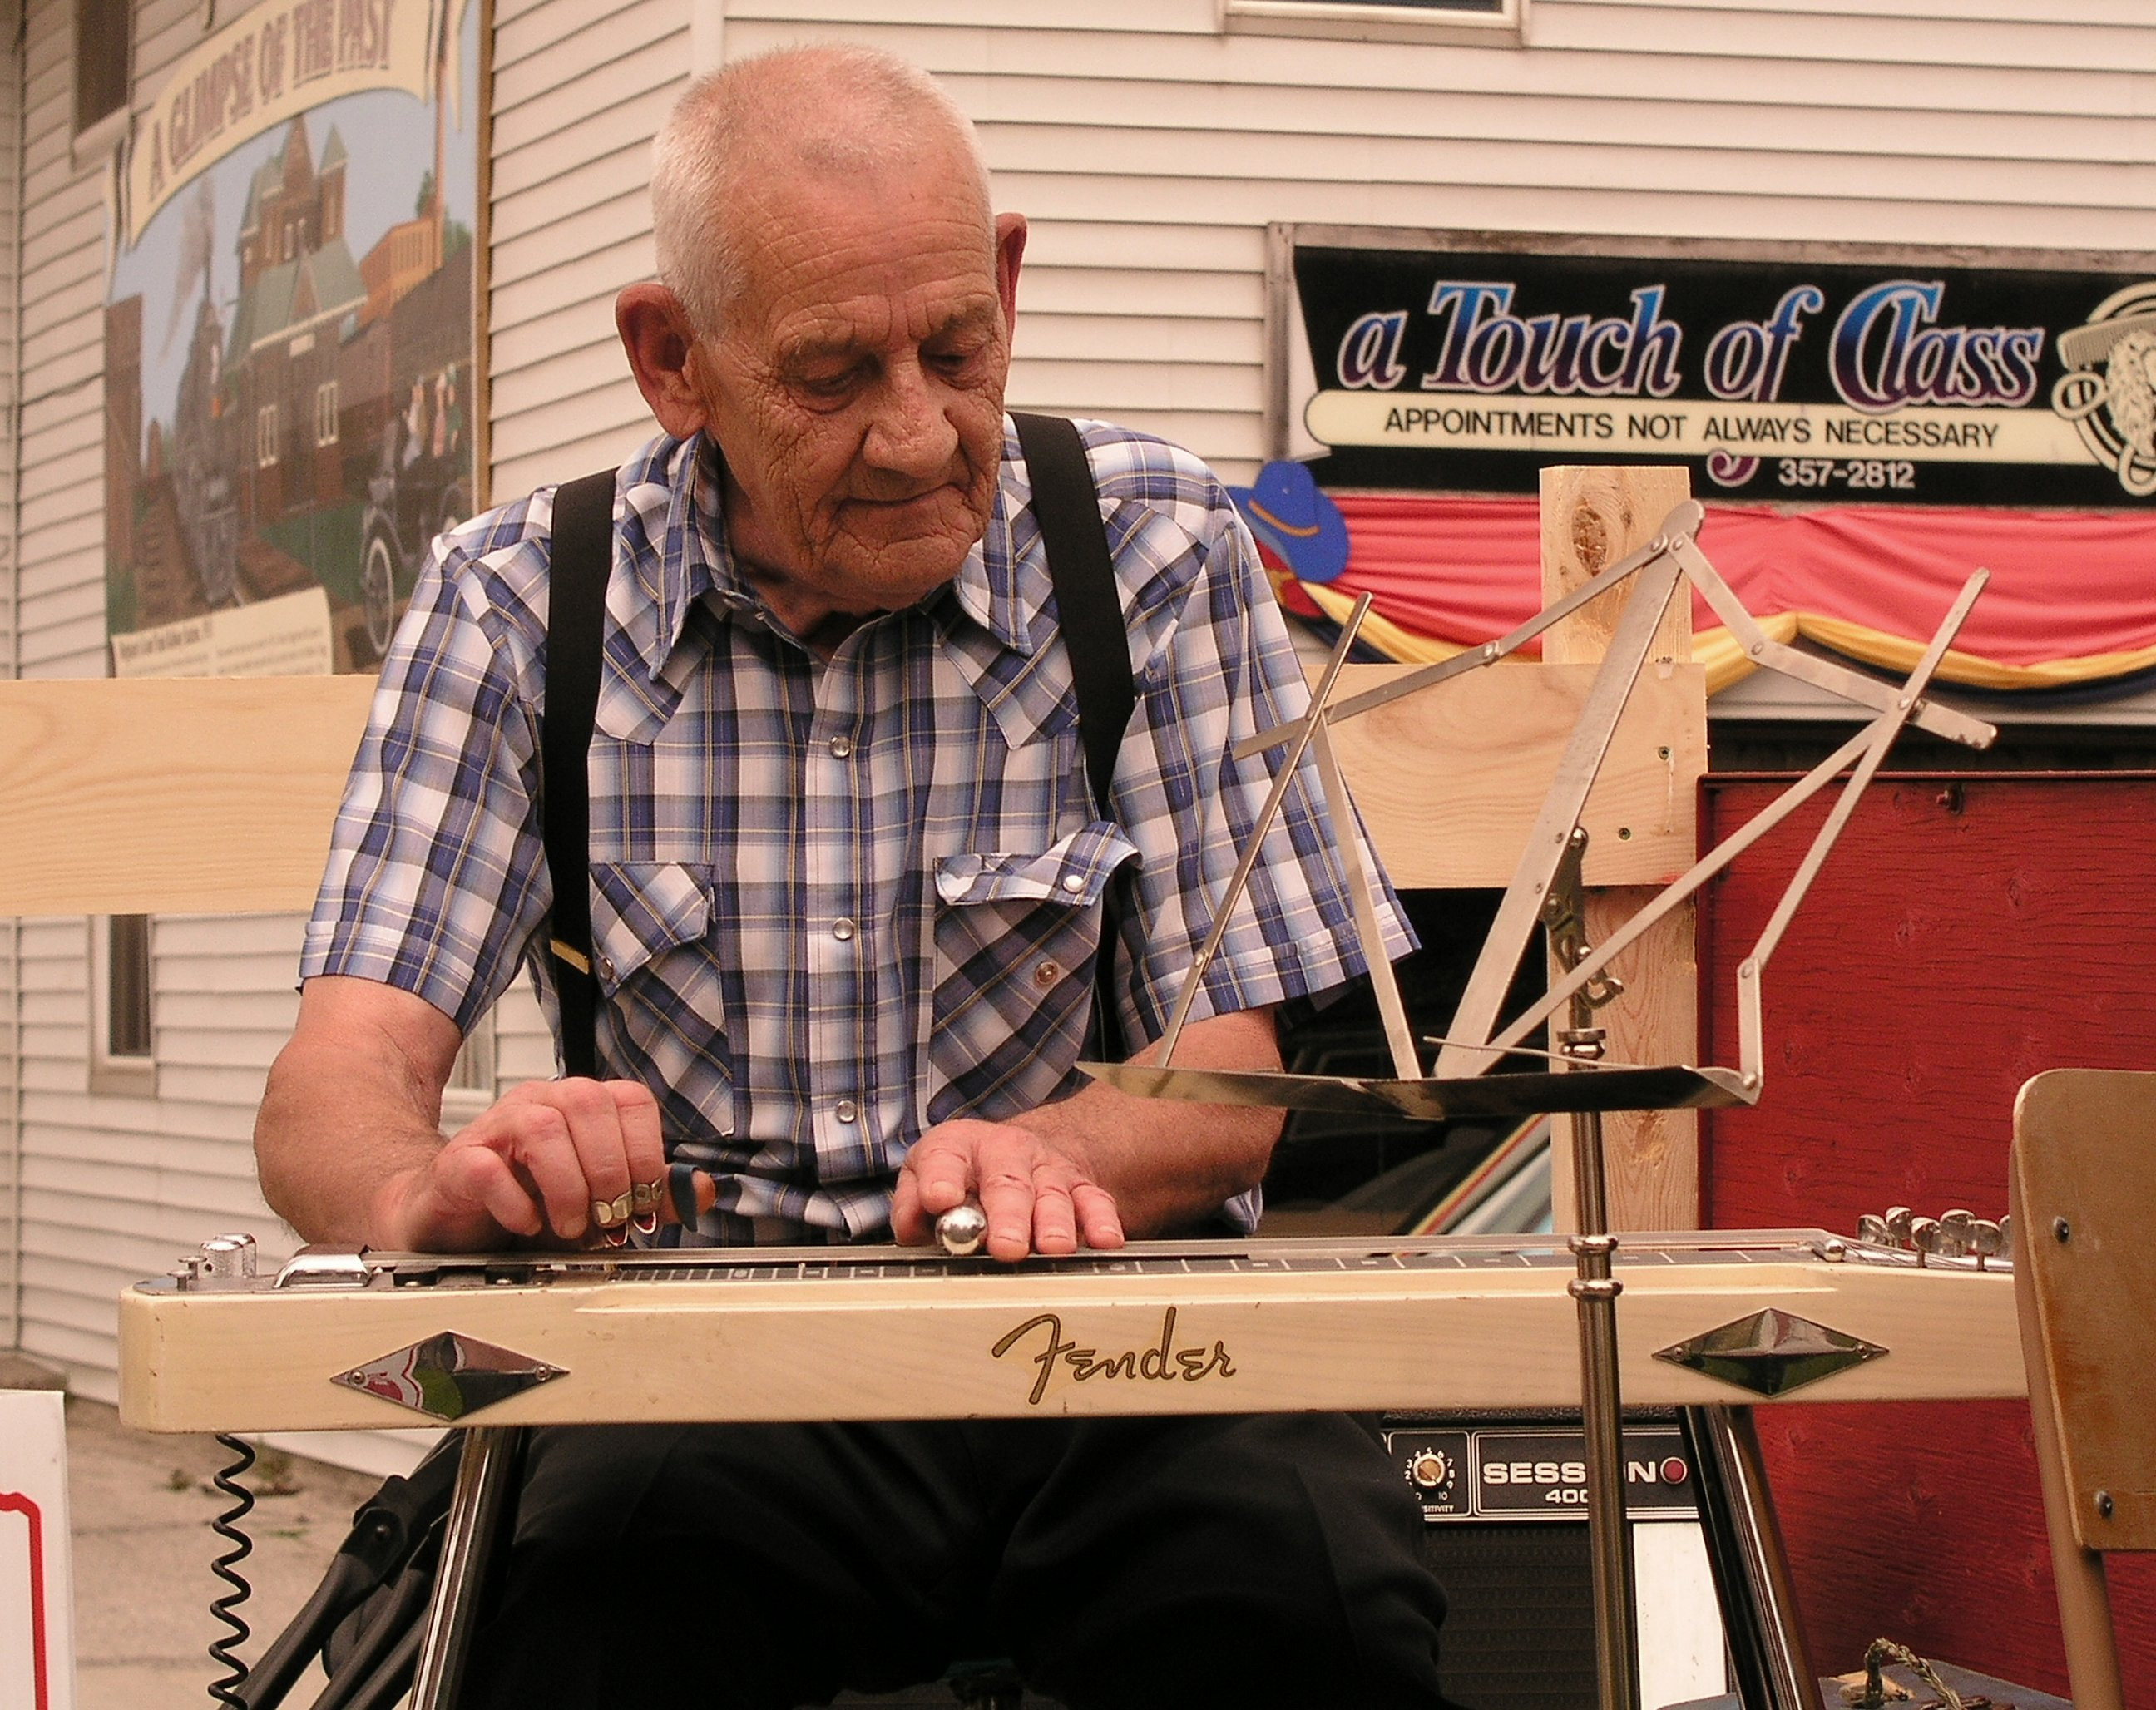 Lloyd playing on a trailer in front of the Wingham Barndance Museum